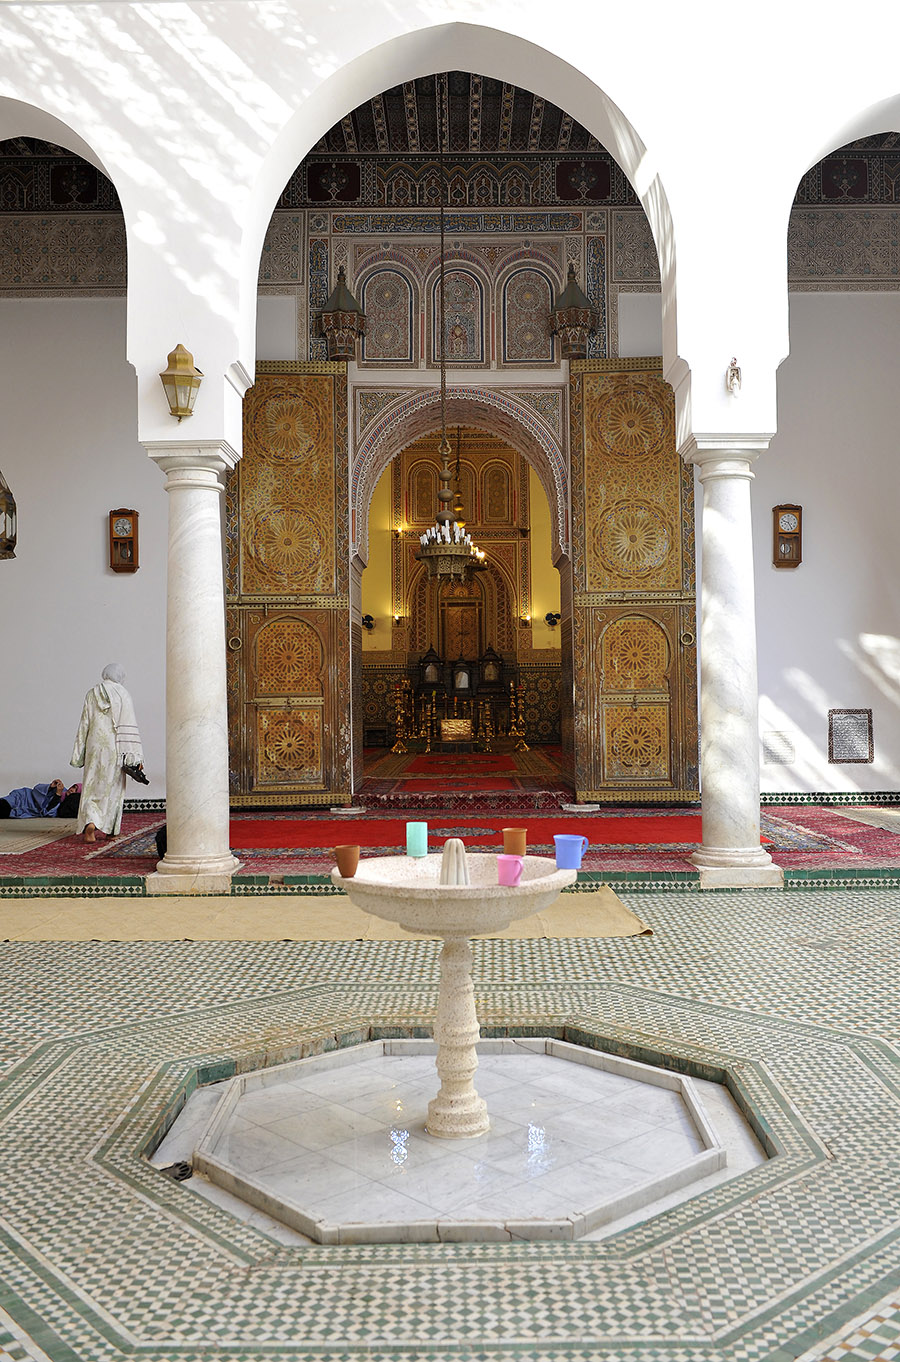 Interior courtyard of the Zaouia Sidi Bel Abbes, Marrakech, 2011